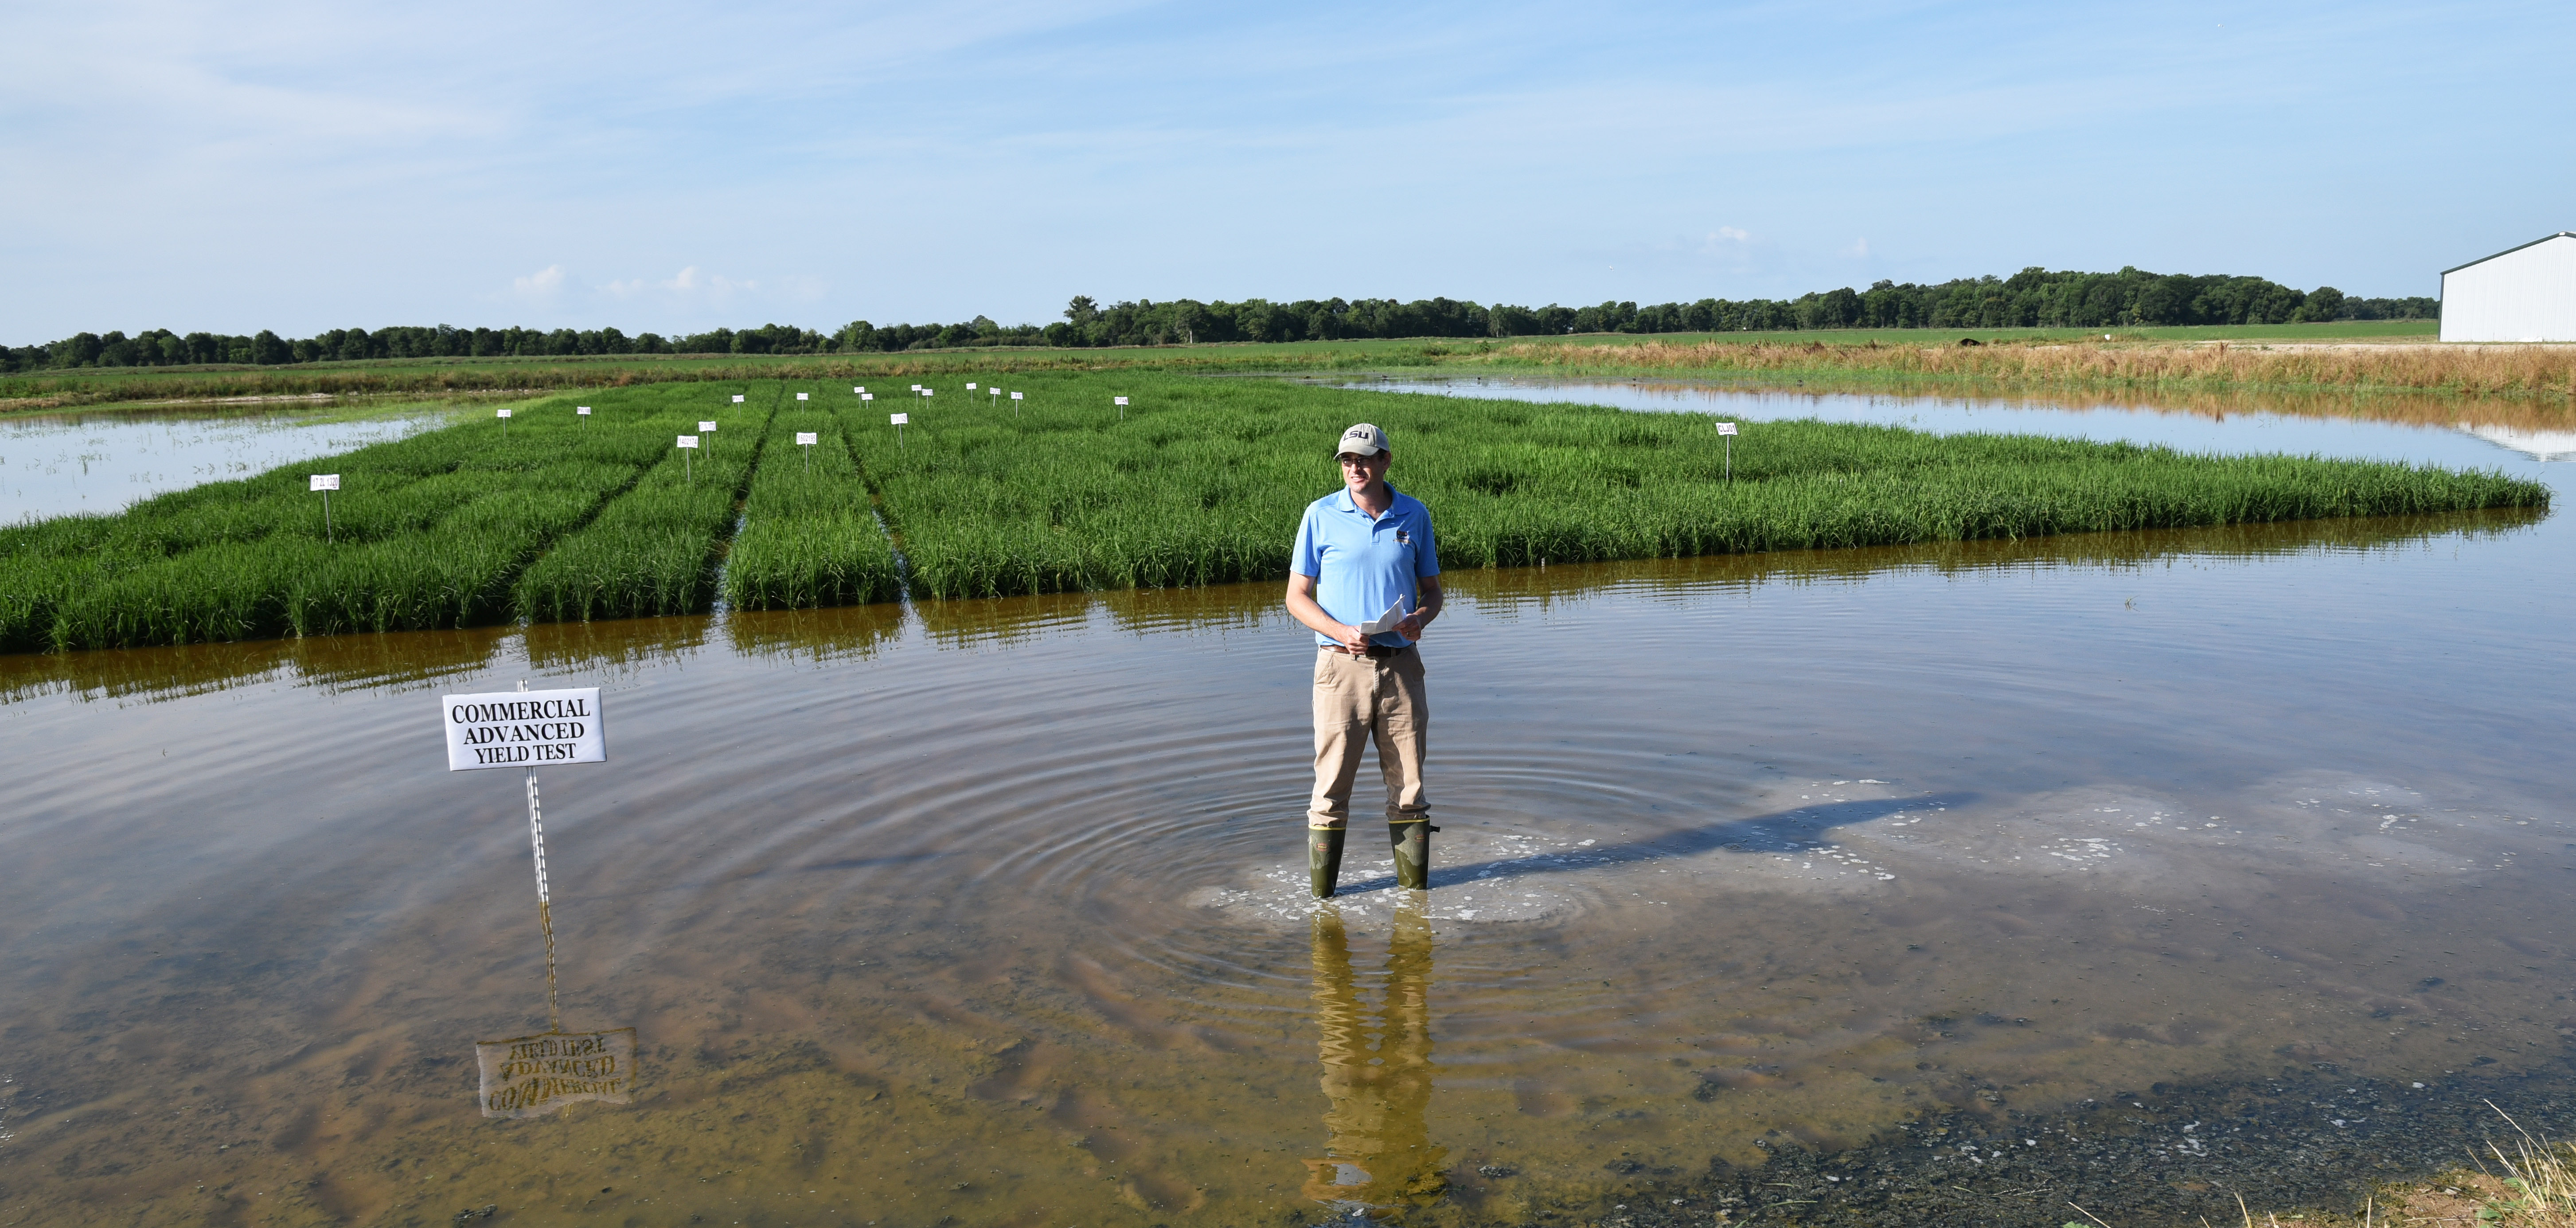 Weather changes affecting rice crop